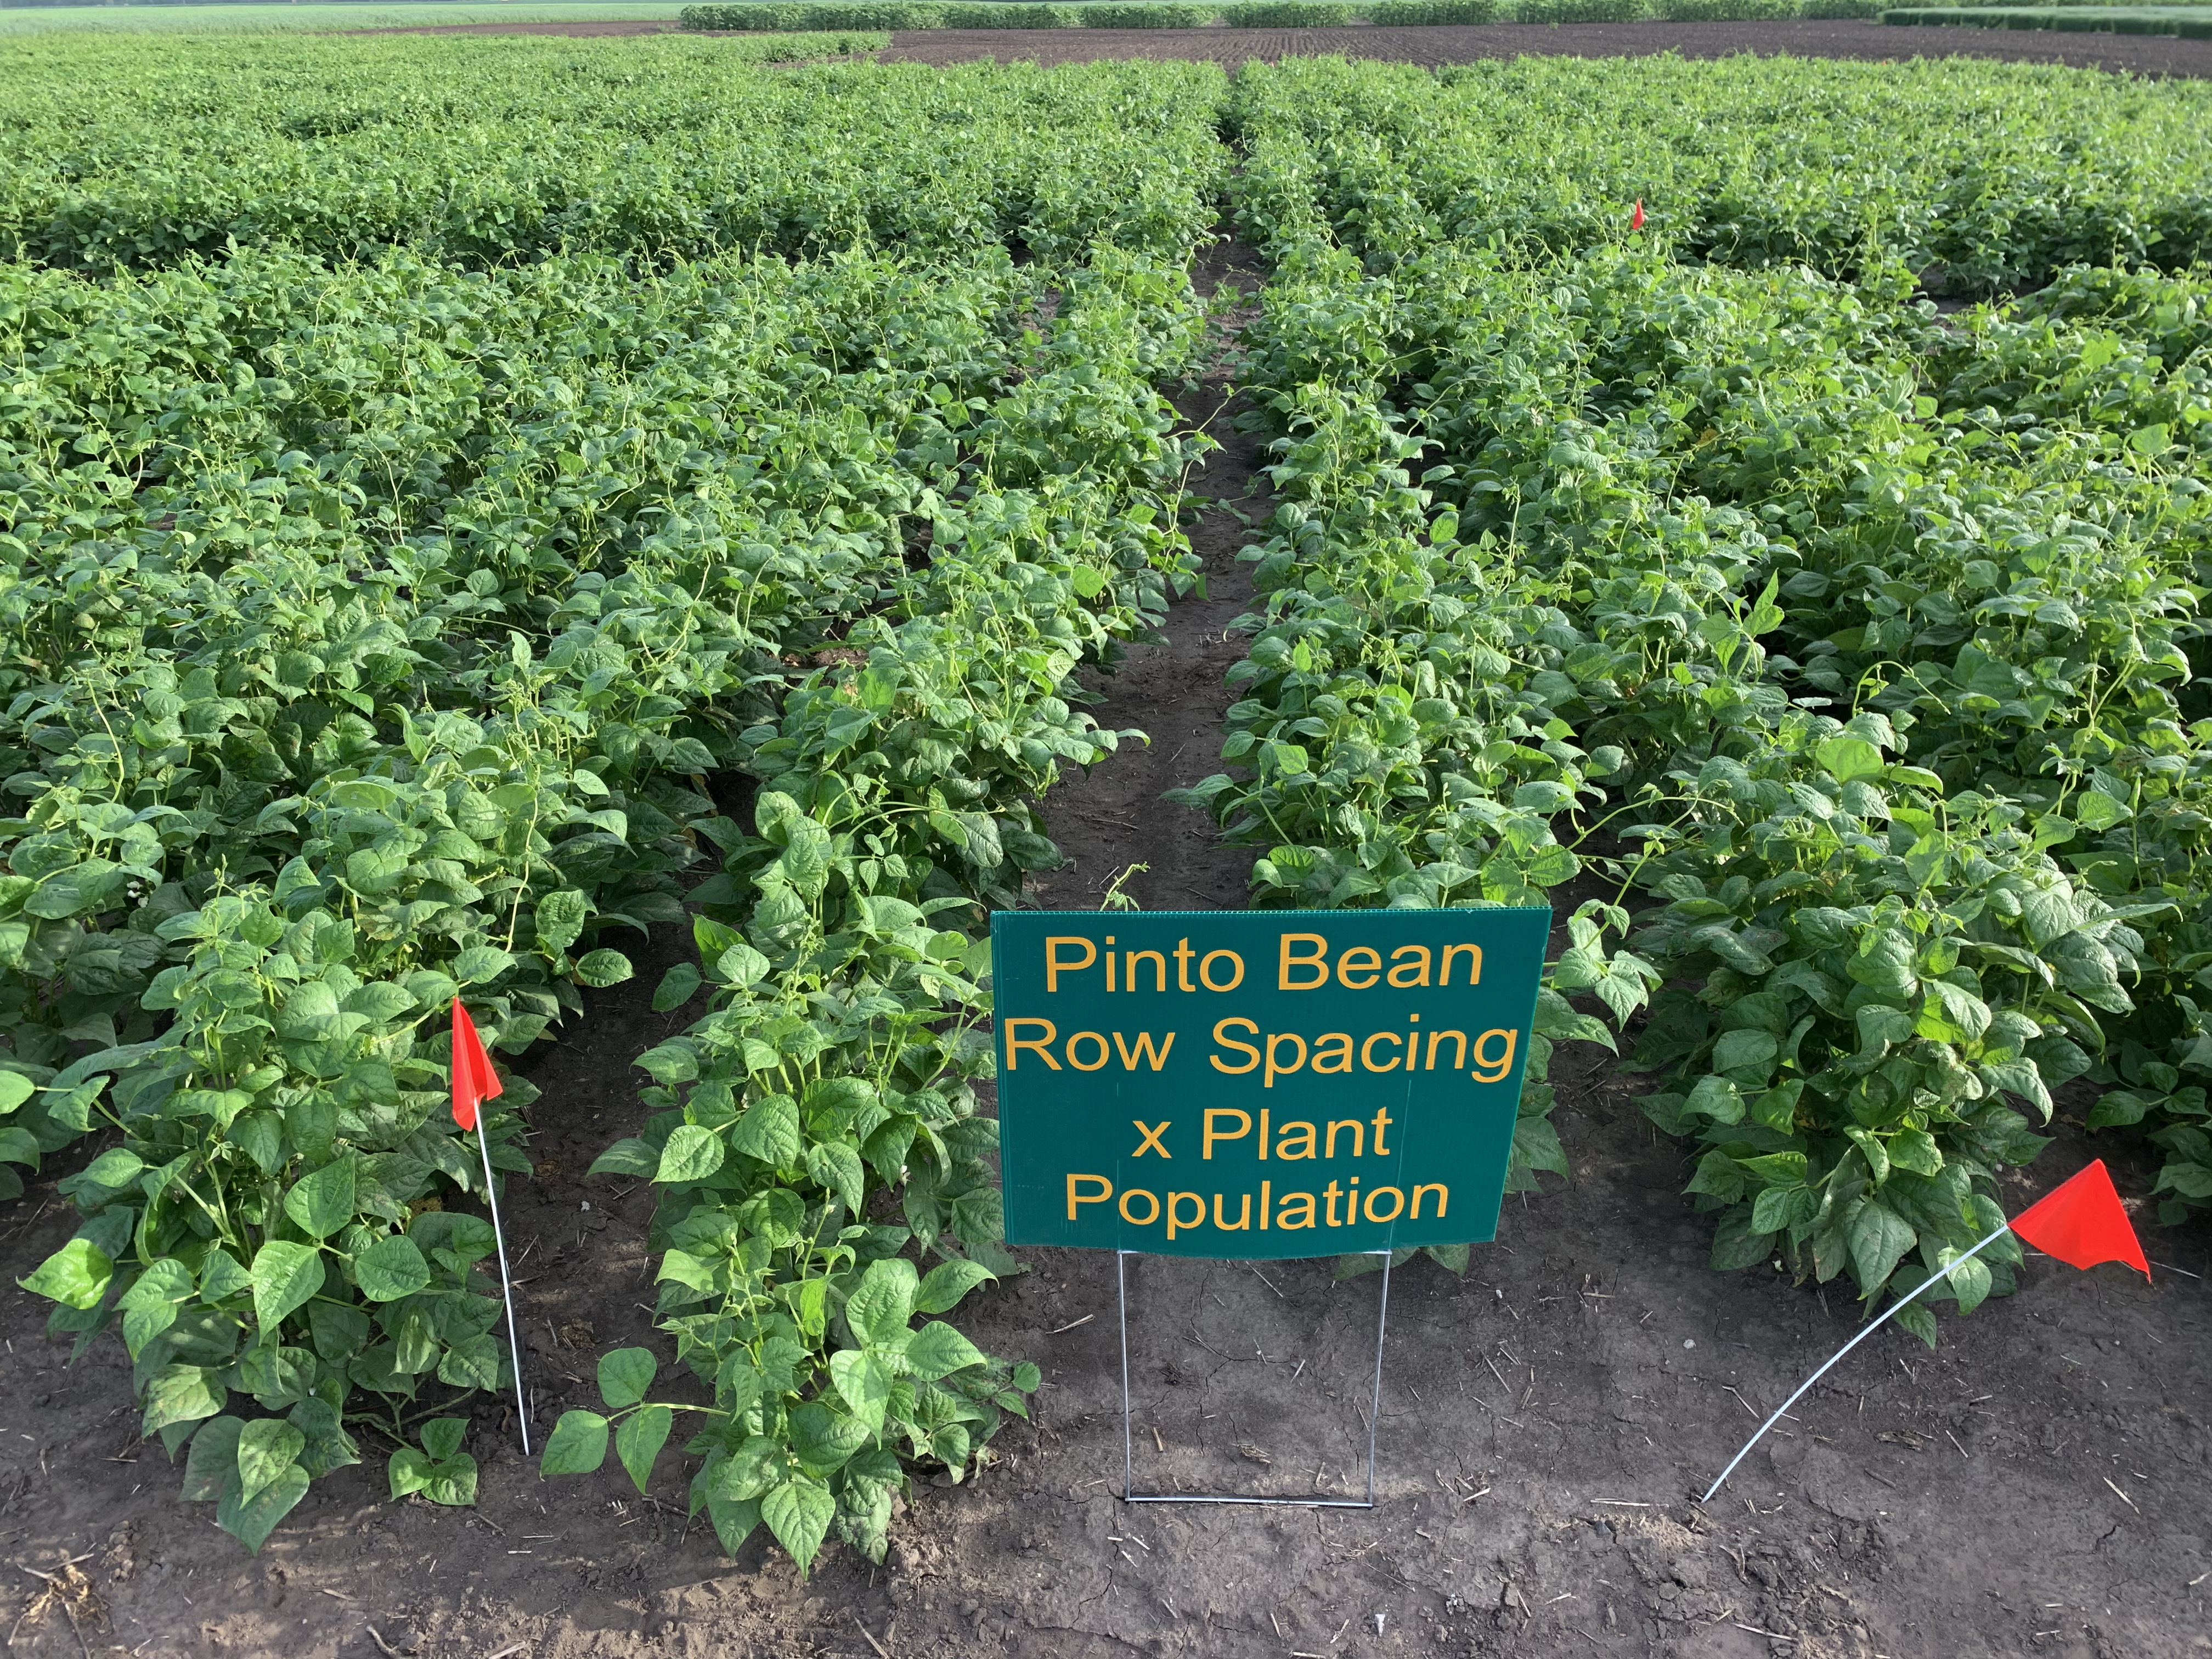 These pinto beans are part of a row spacing and plant population study. (NDSU photo)